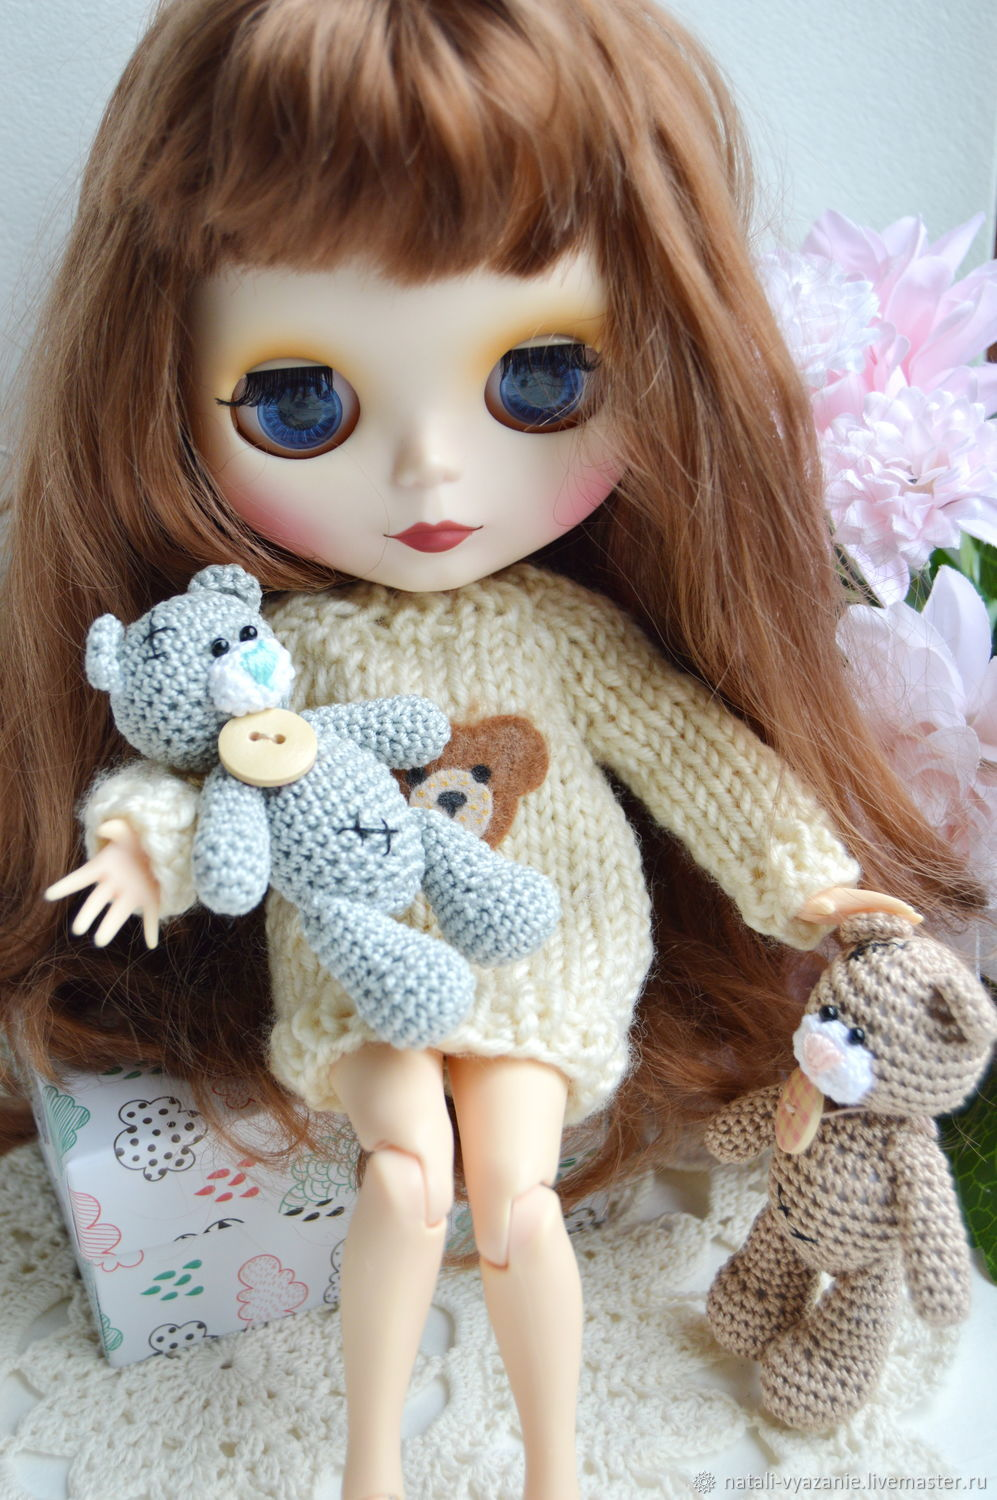 Teddy Bear Knitted Mini Shop Online On Livemaster With Shipping